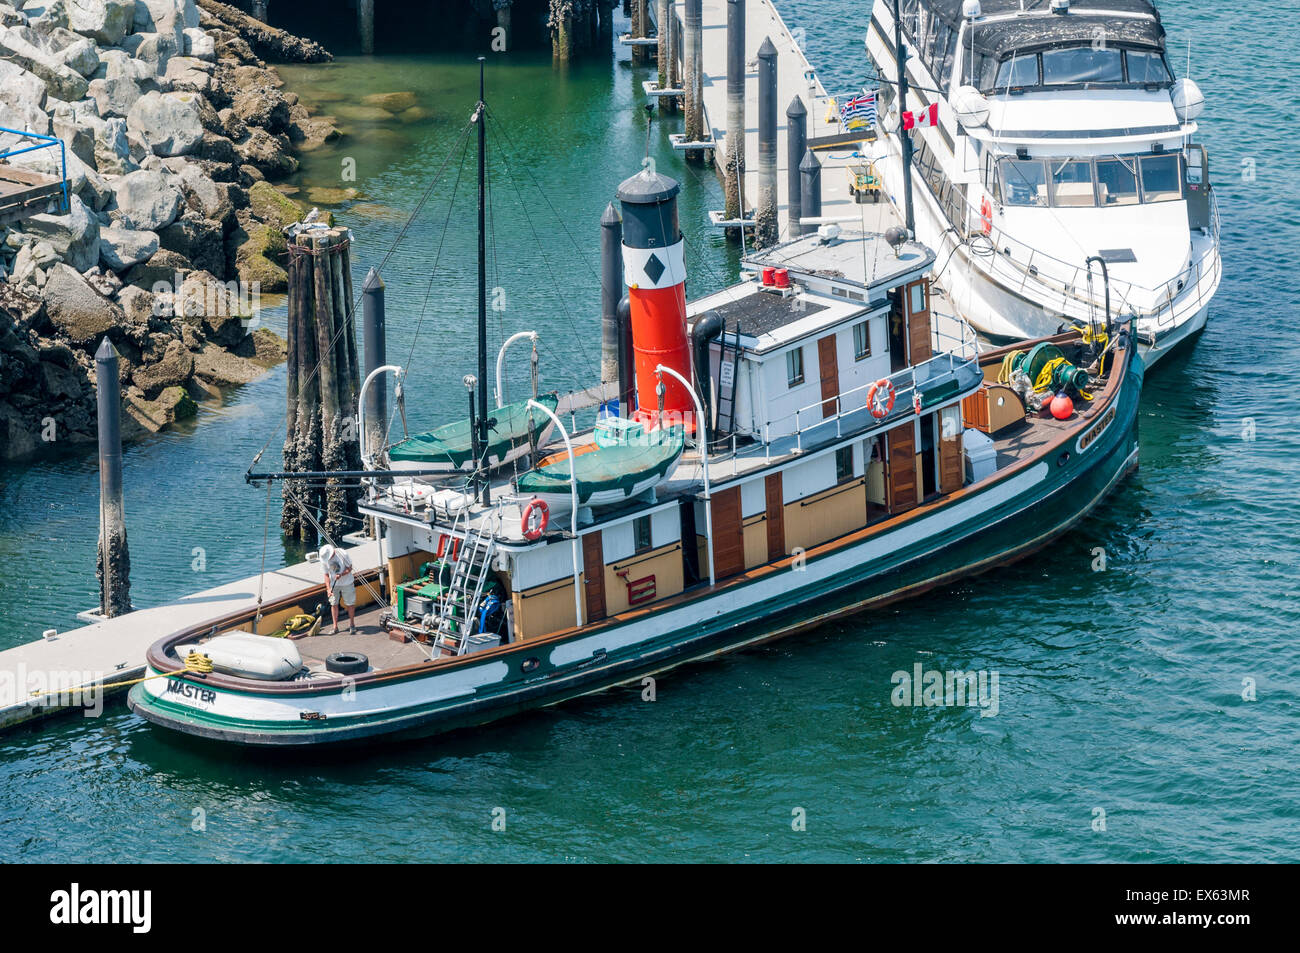 Steam powered tug, The Master, Granville Island dock, Vancouver, British Columbia, Canada - Stock Image